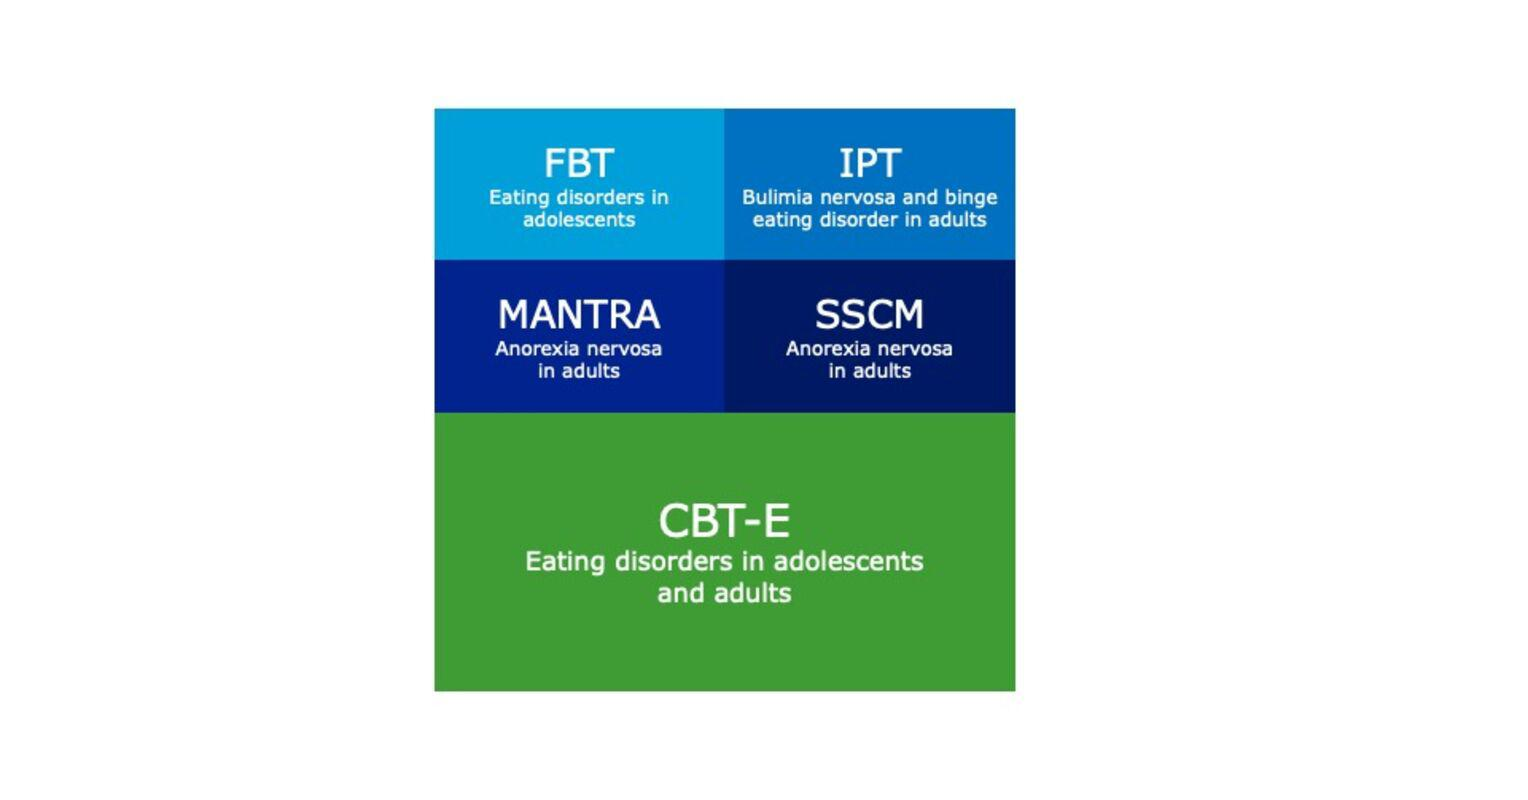 Treatment of eating disorders in adults and adolescents